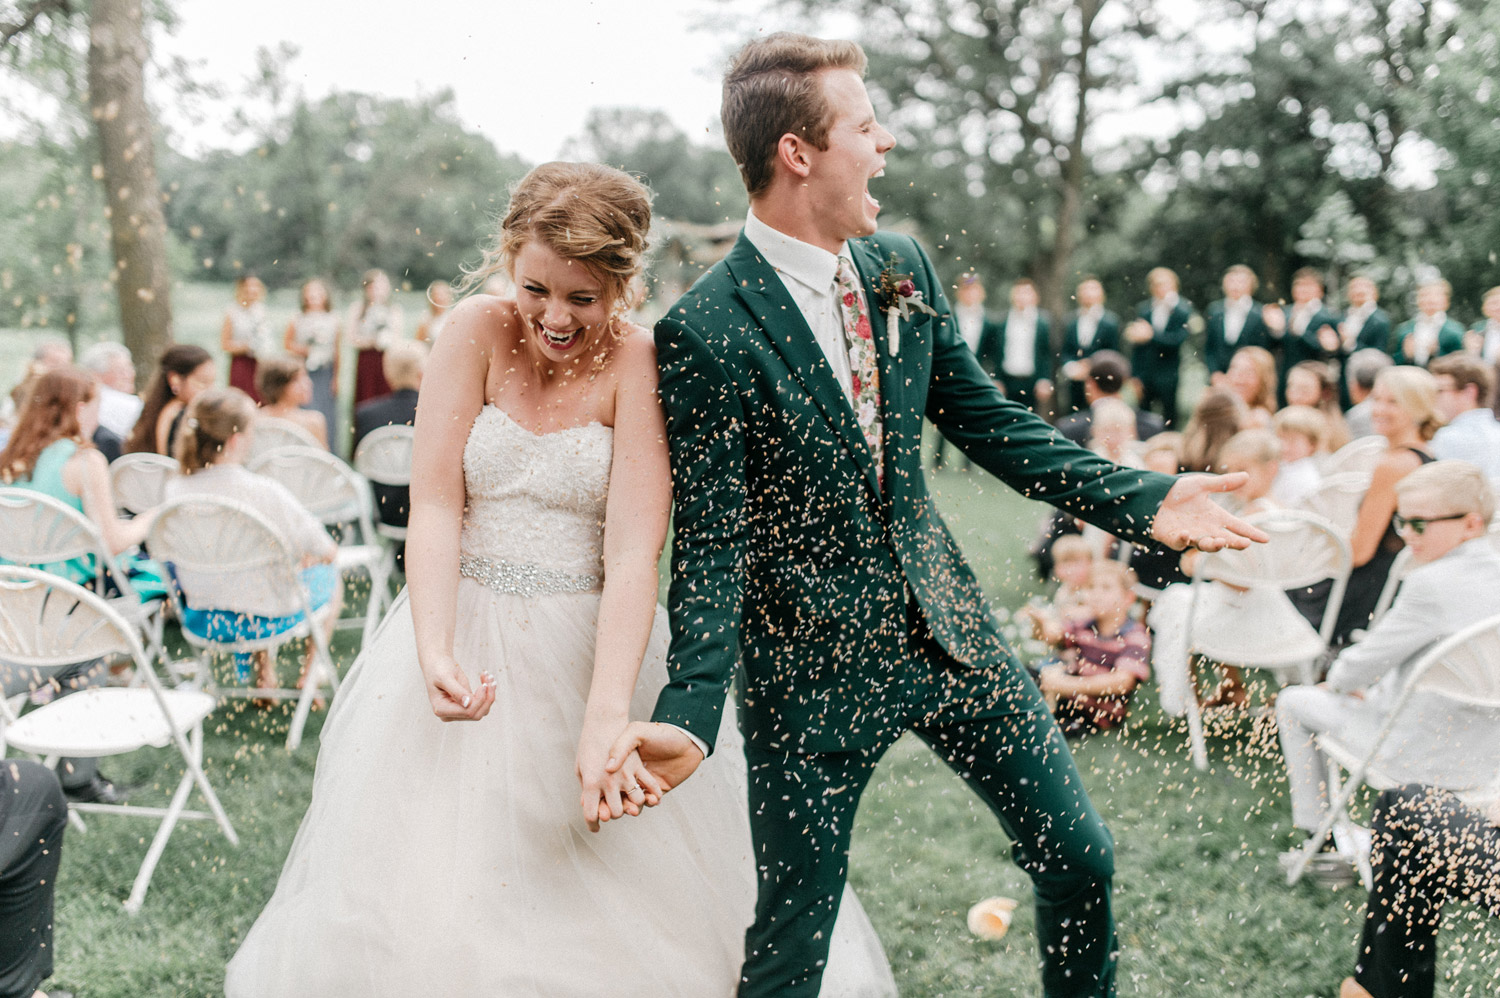 guests throw confetti at bride and groom during ceremony by geneoh photography